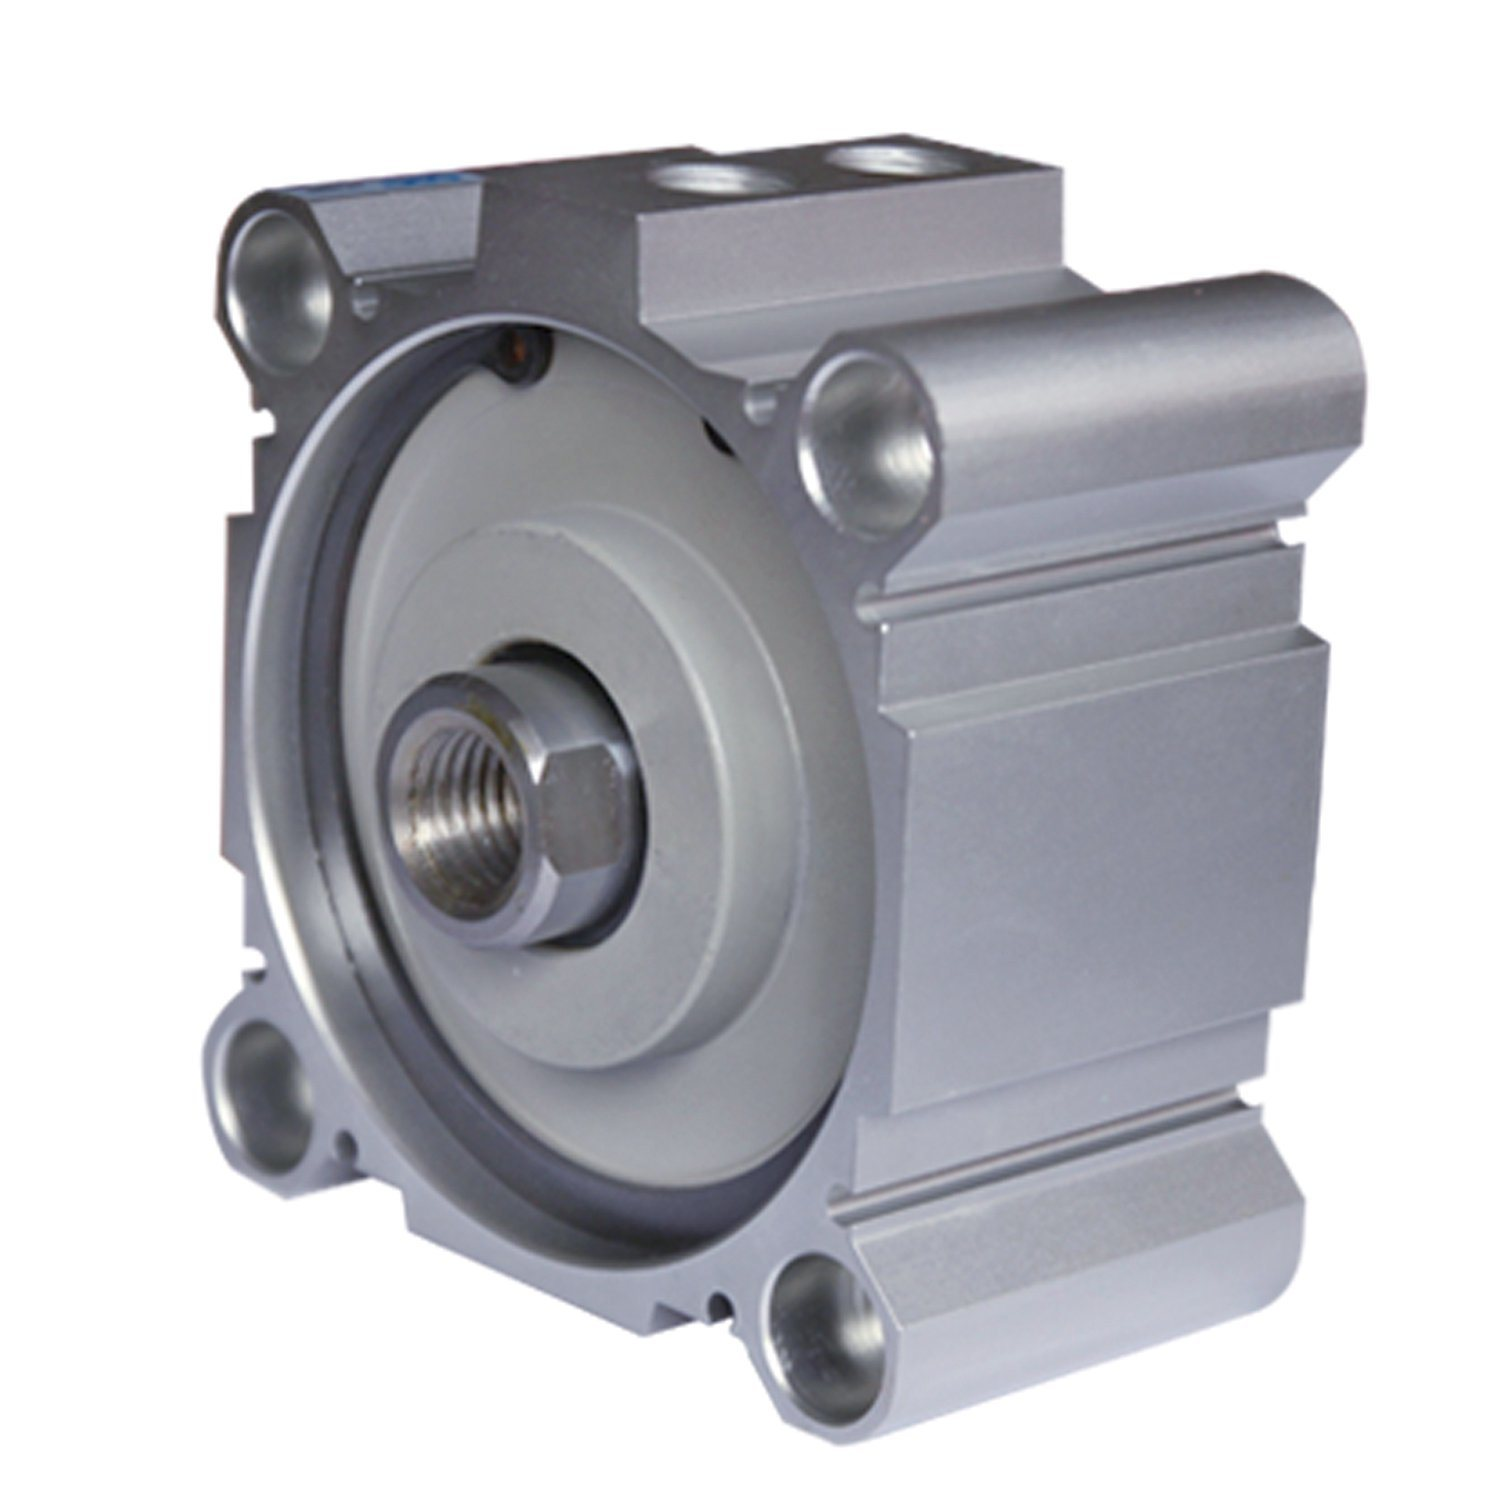 Dopow Series Cq2b100-10 Compact Cylinder Double Acting Basic Type